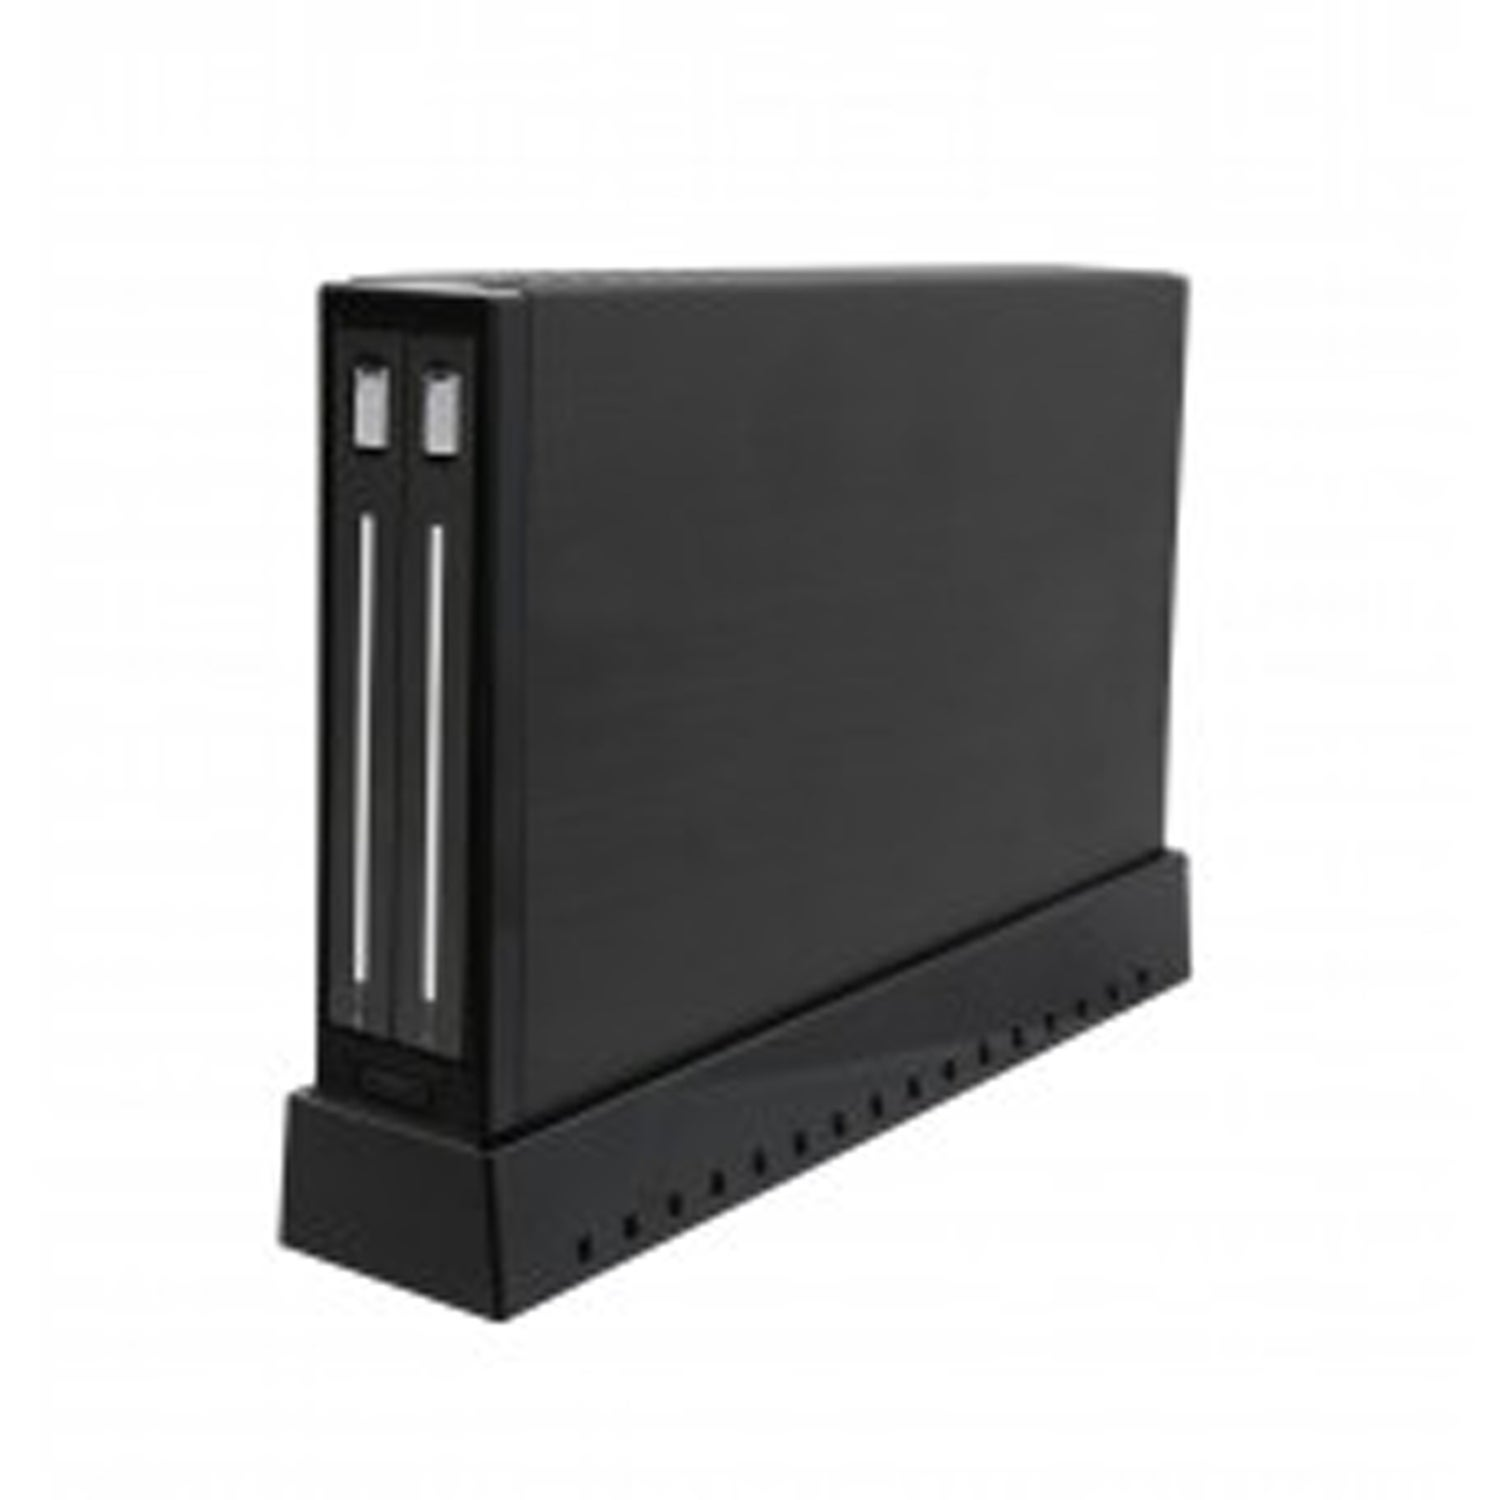 SYBA Multimedia DAS Array - 2 x HDD Supported - 2 x SSD Supported